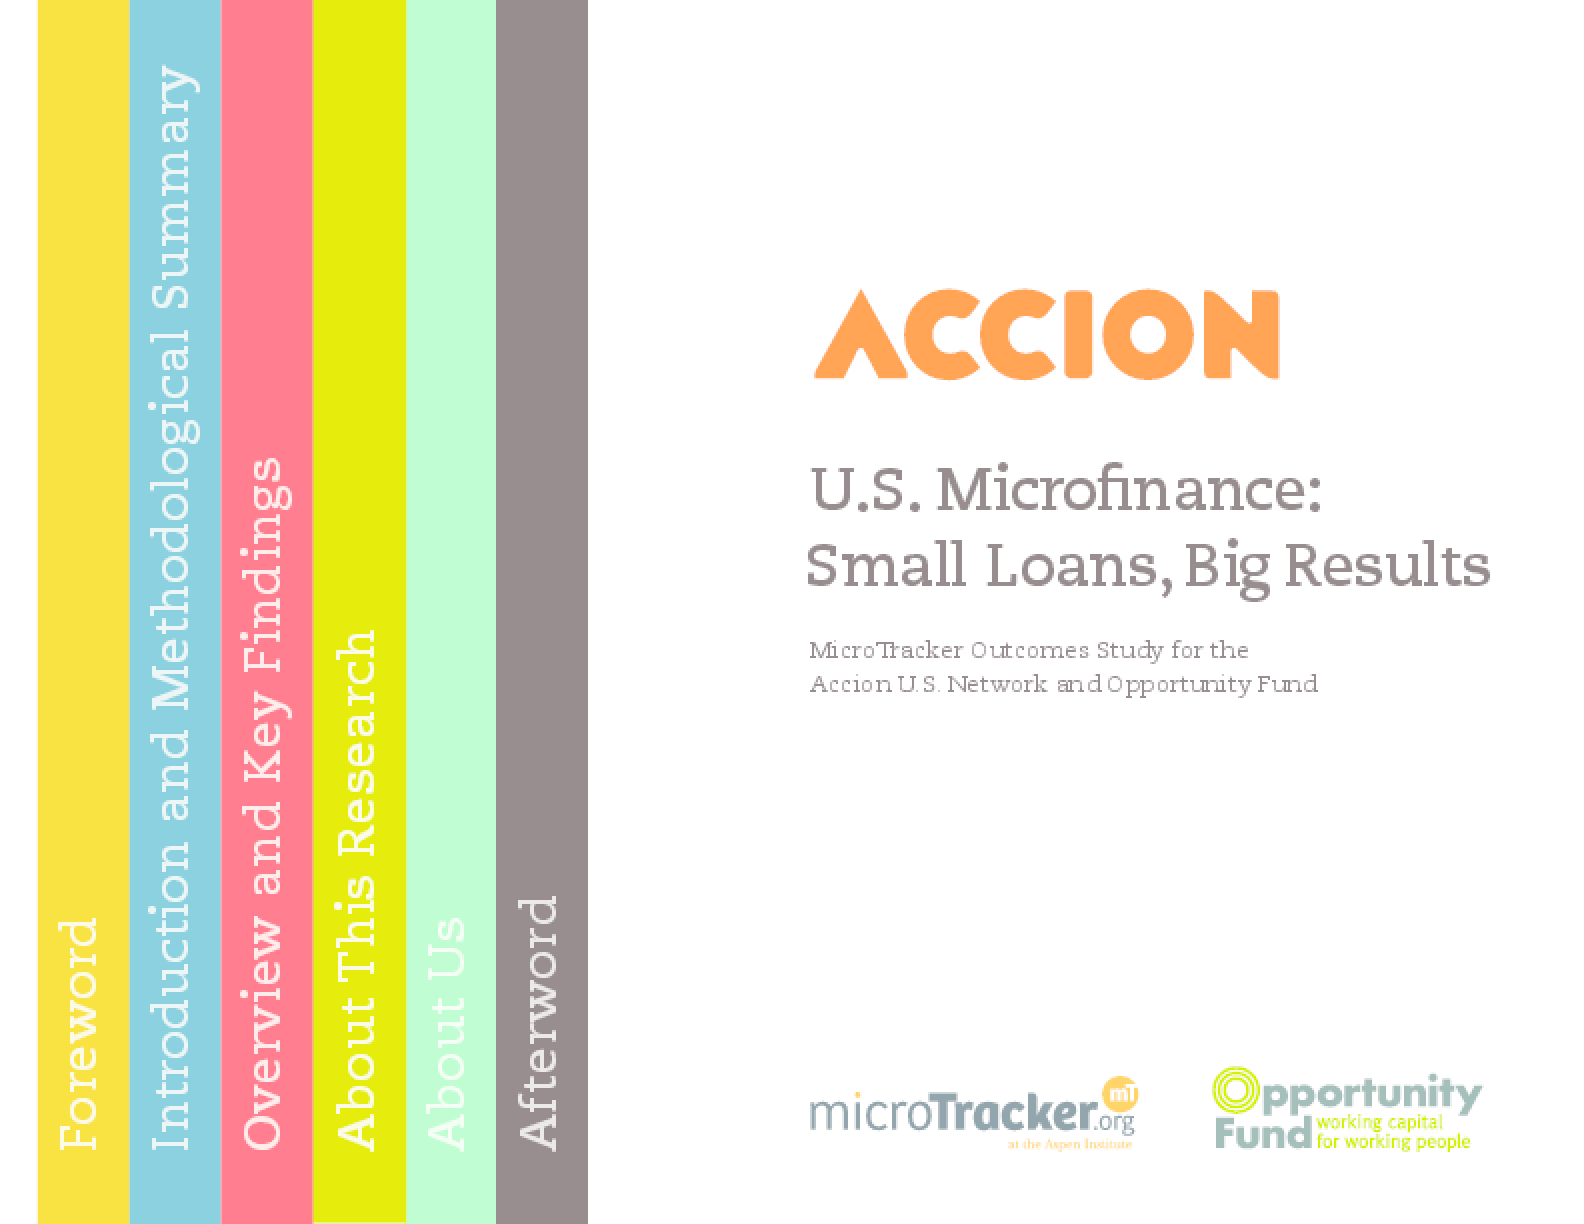 U.S. Microfinance: Small Loans, Big Results